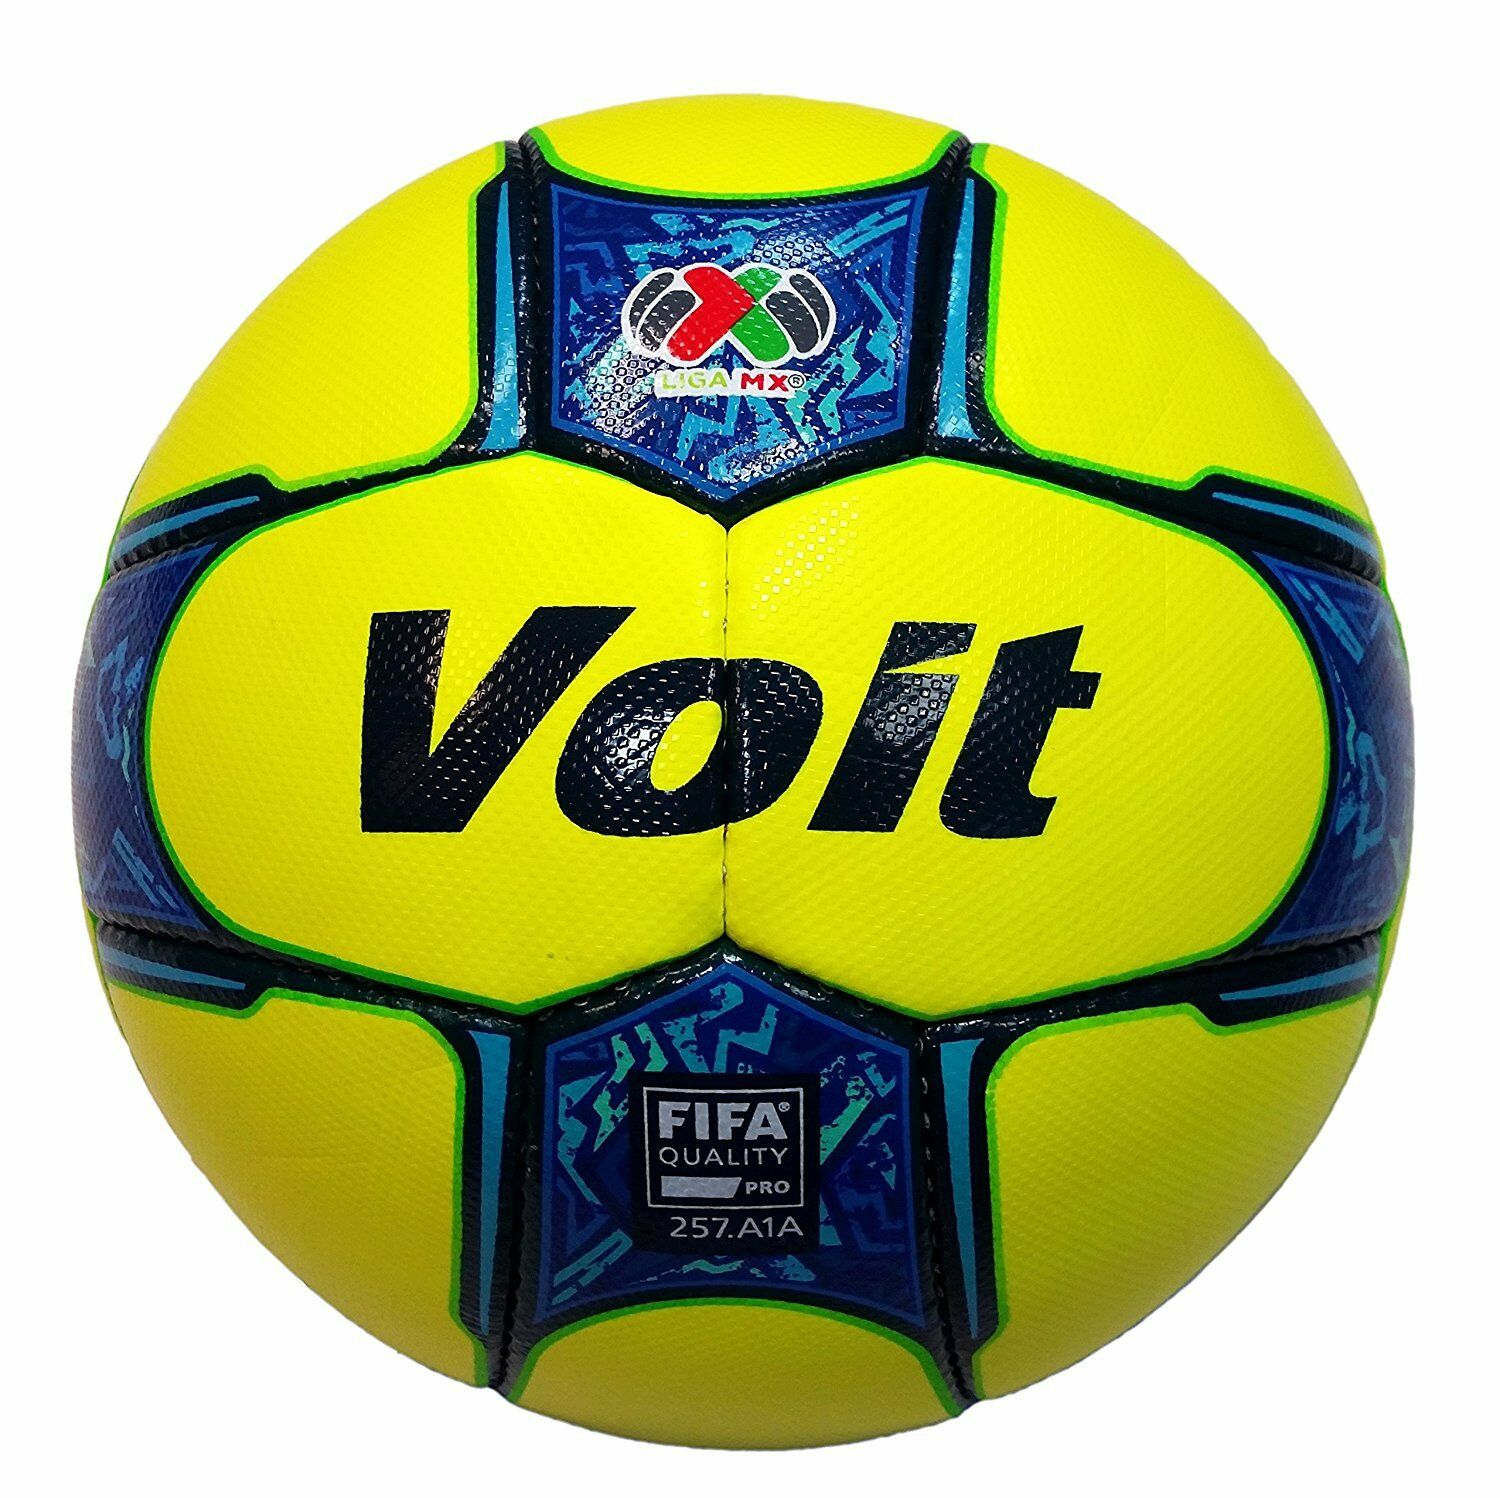 Voit Soccer Ball Clausura 2017 New Official Match Ball Ball Ball FMF Größe 5 e157d0